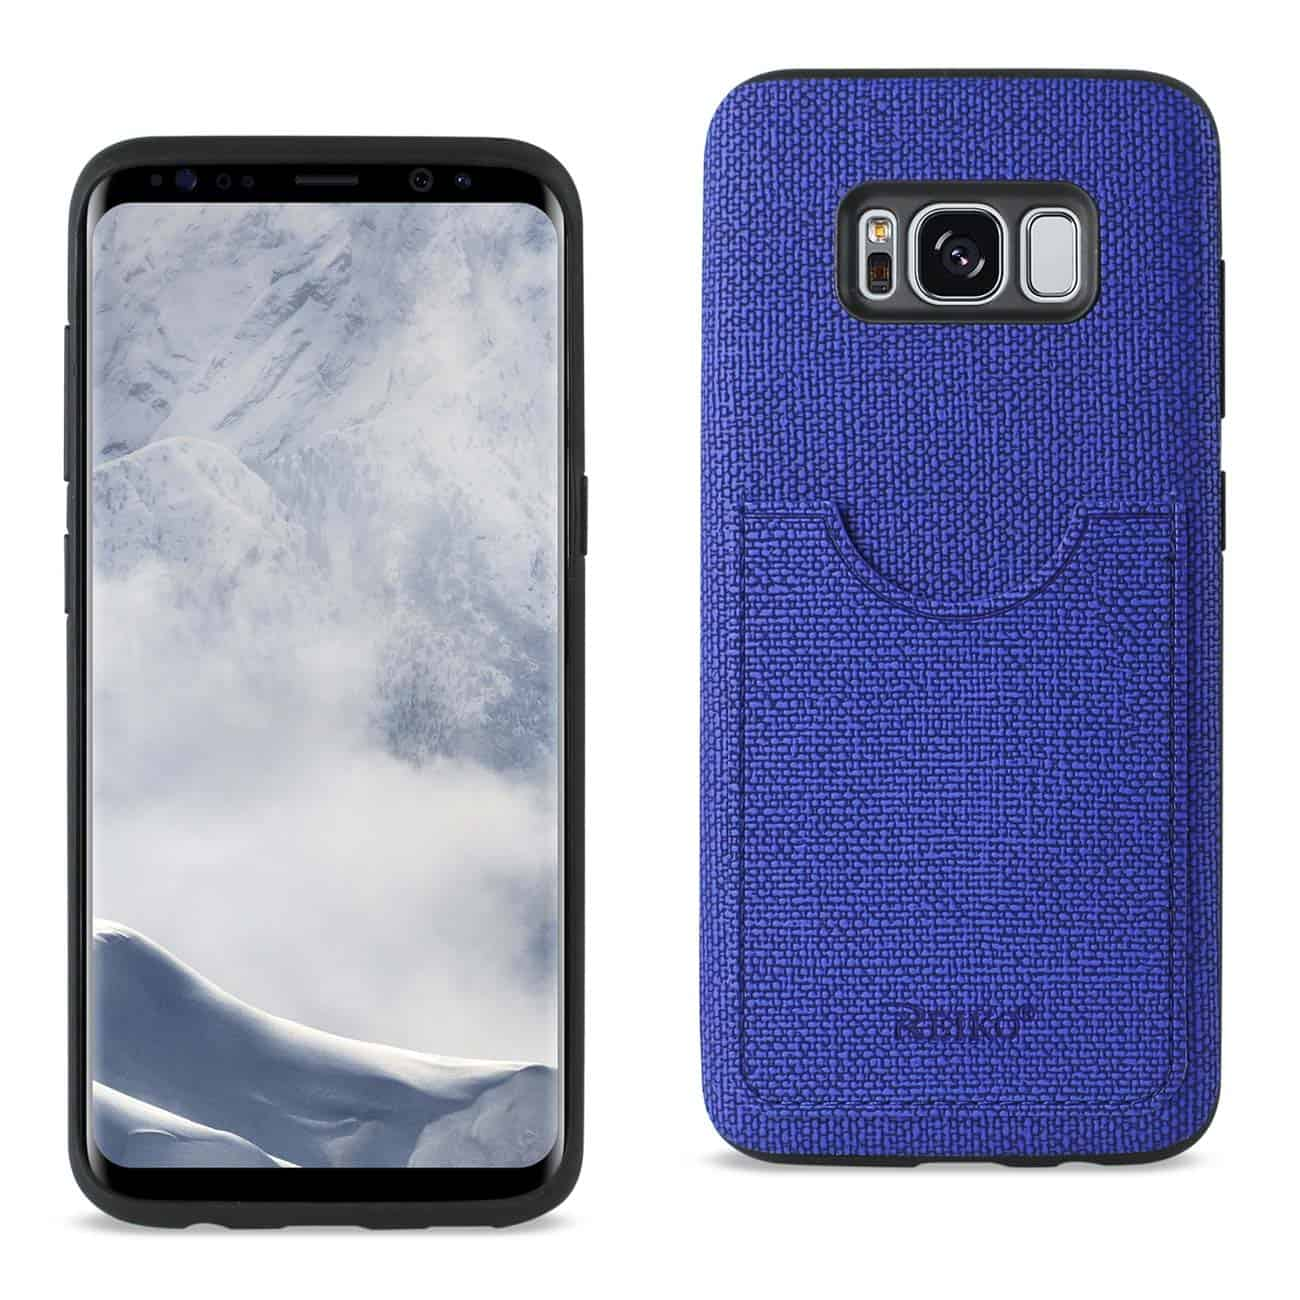 SAMSUNG GALAXY S8 EDGE/ S8 PLUS ANTI-SLIP TEXTURE PROTECTOR COVER WITH CARD SLOT IN NAVY